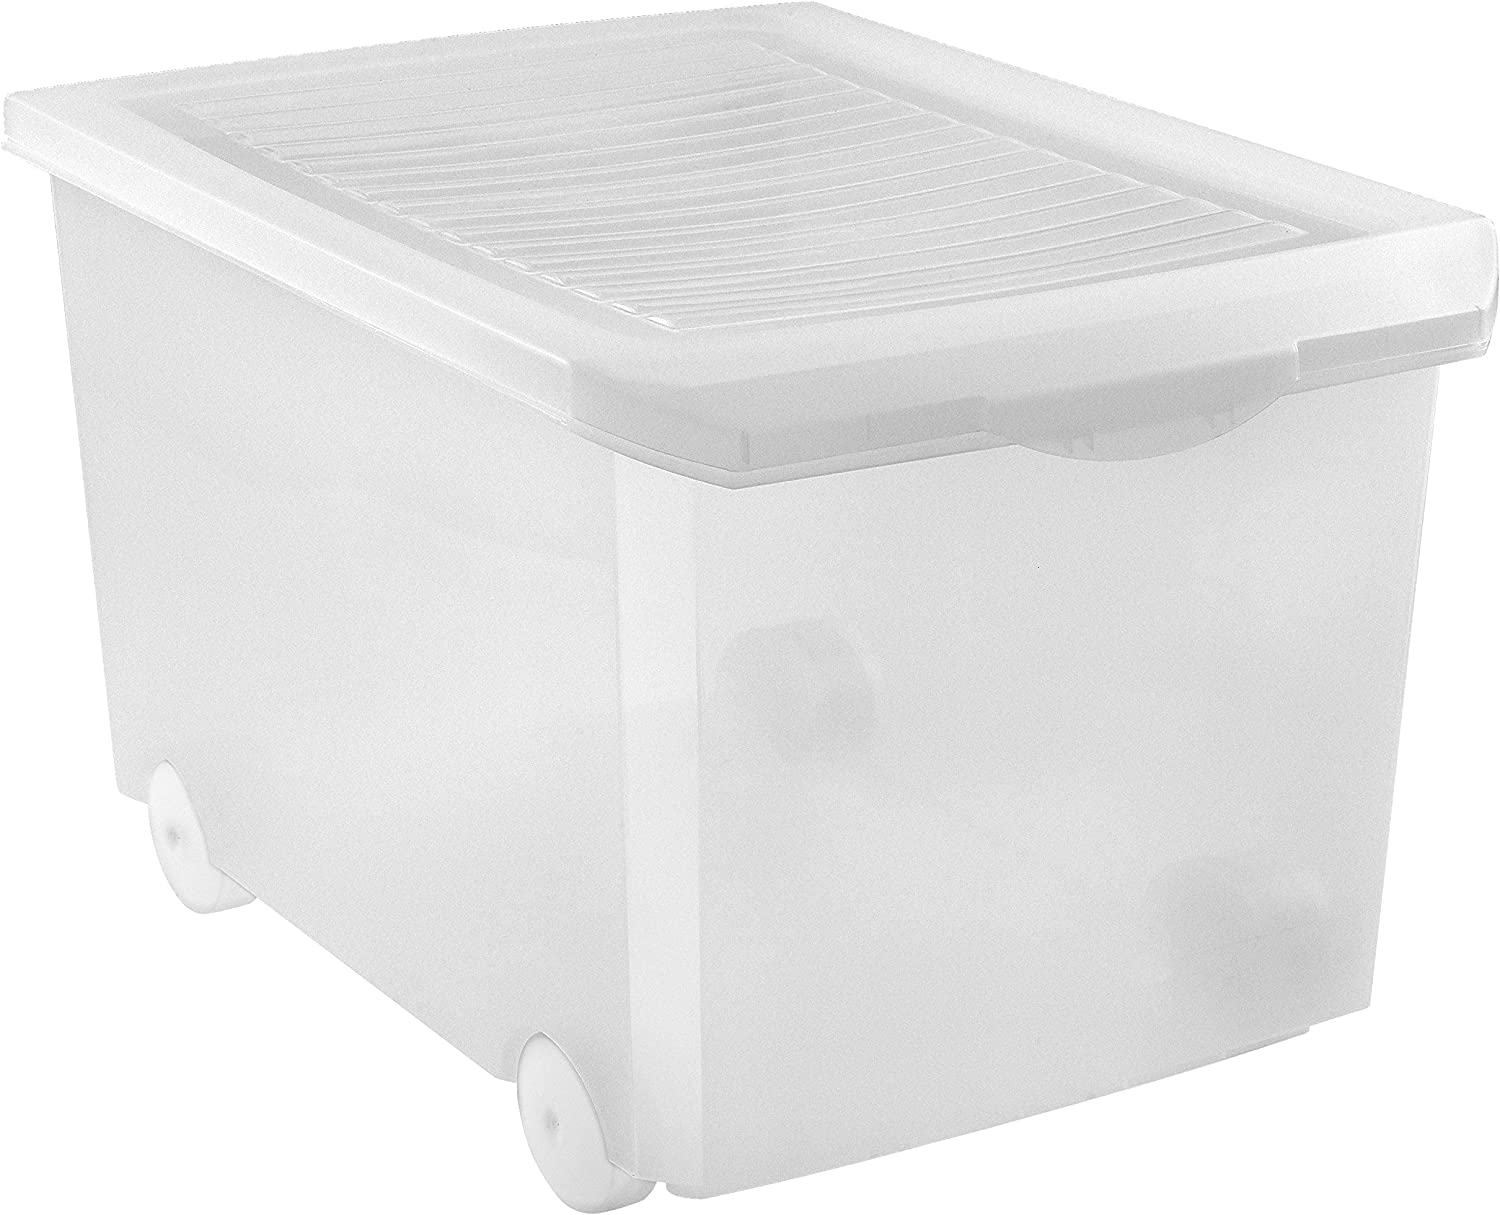 specialty shop TATAY Storage Box with price Transparent 60 Litre Wheels